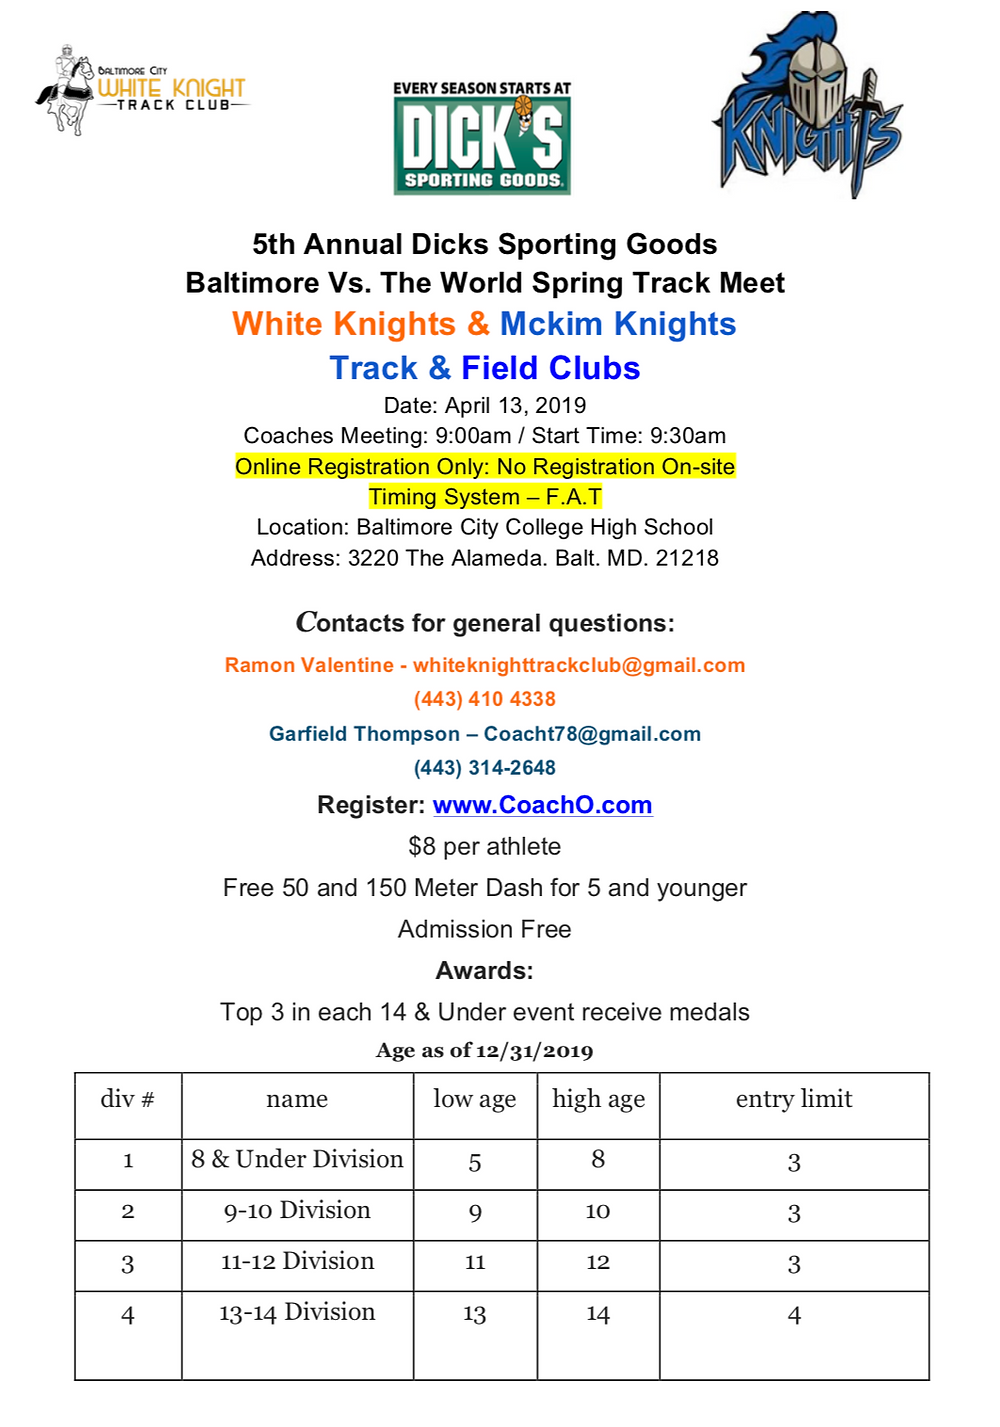 https://coachoregistration.com/track/info/md_spartans/2019/dicspogooe1901/info.pdf